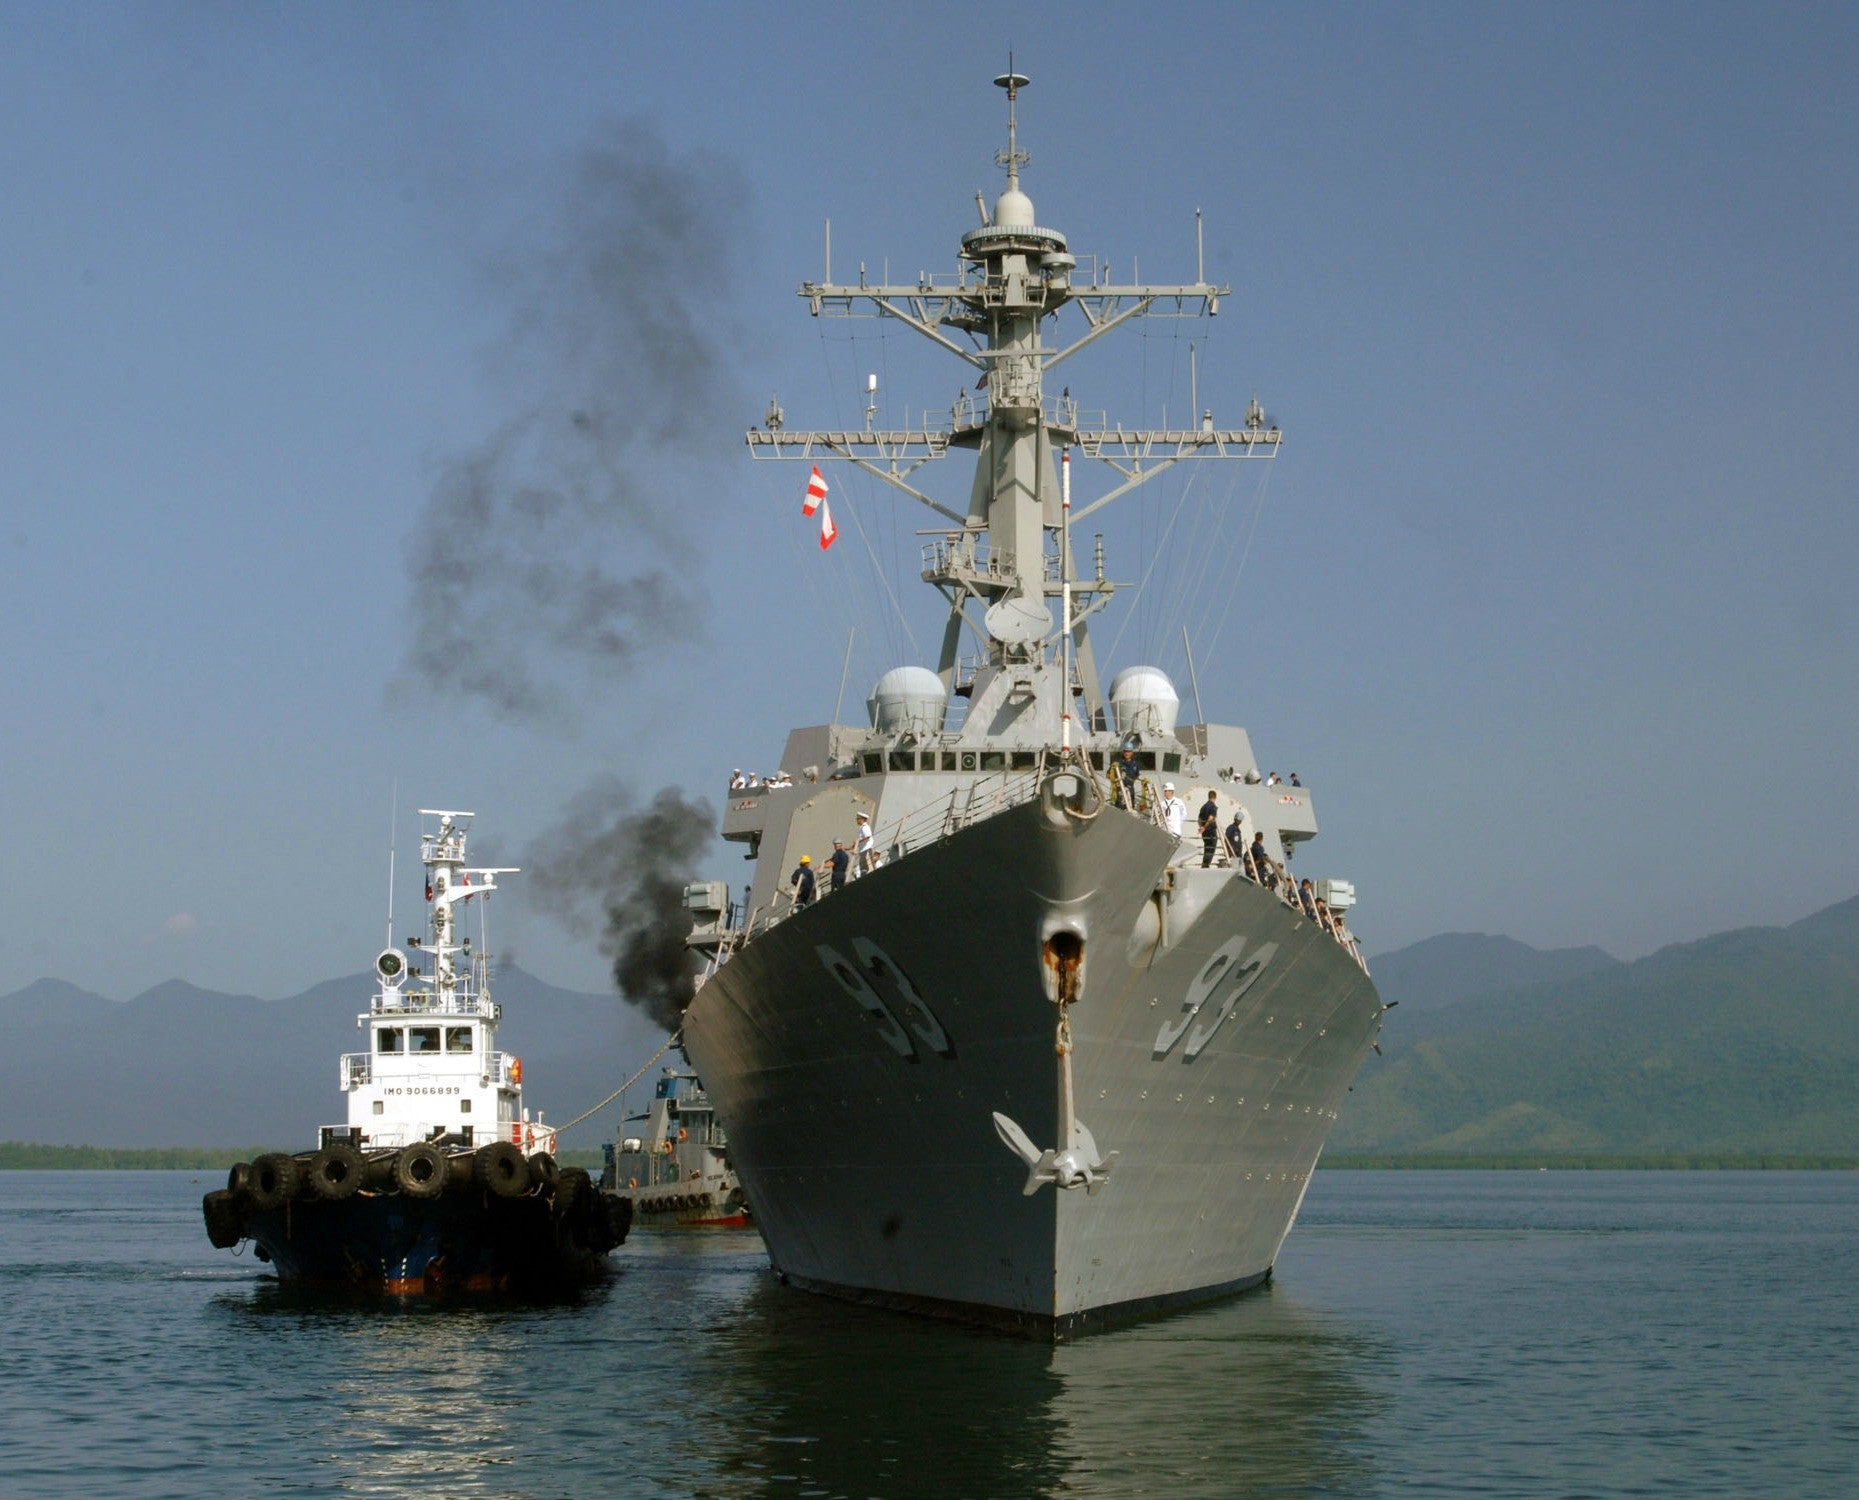 "USS Chung-Hoon DDG-93 Puerto-Princesa, Philippines June 28, 2011 - 8 x 10"" Photograph"